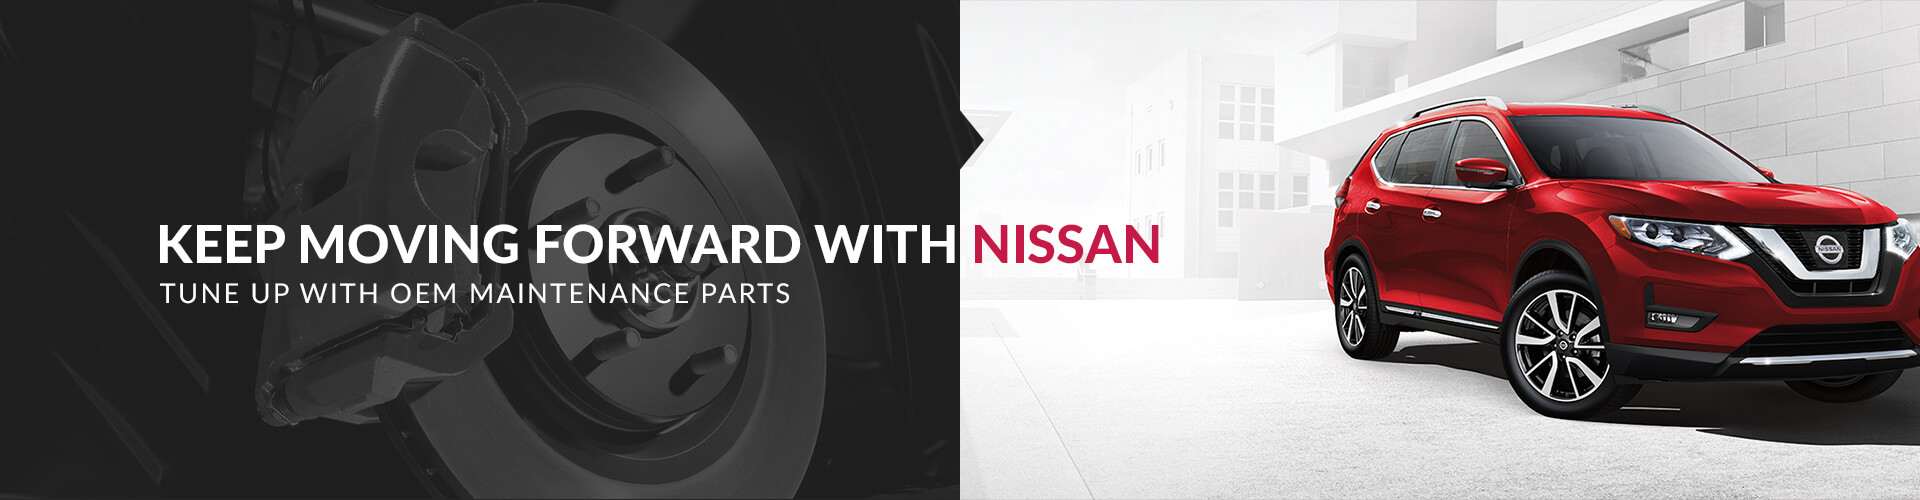 OEM Nissan Maintenance Parts